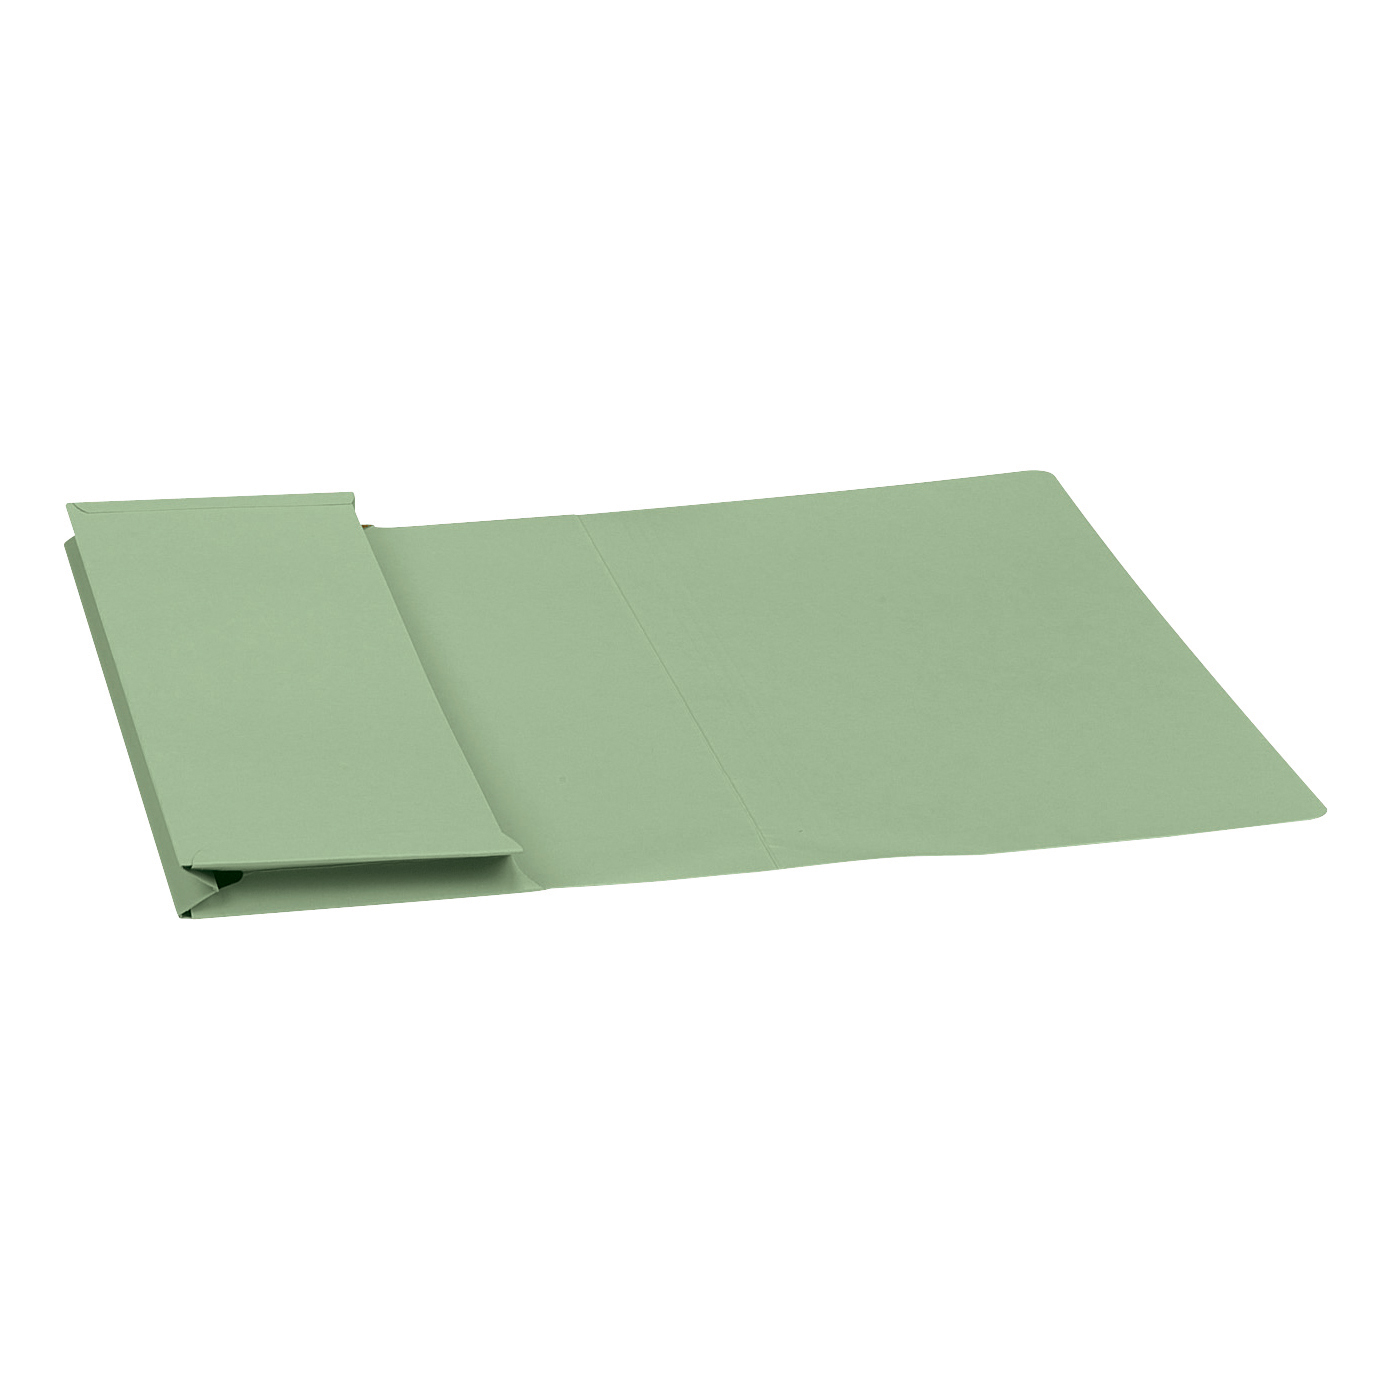 Document Wallets Guildhall Legal Document Wallet Full Flap 315gsm W356xH254mm Green Ref PW3-GRNZ Pack 50